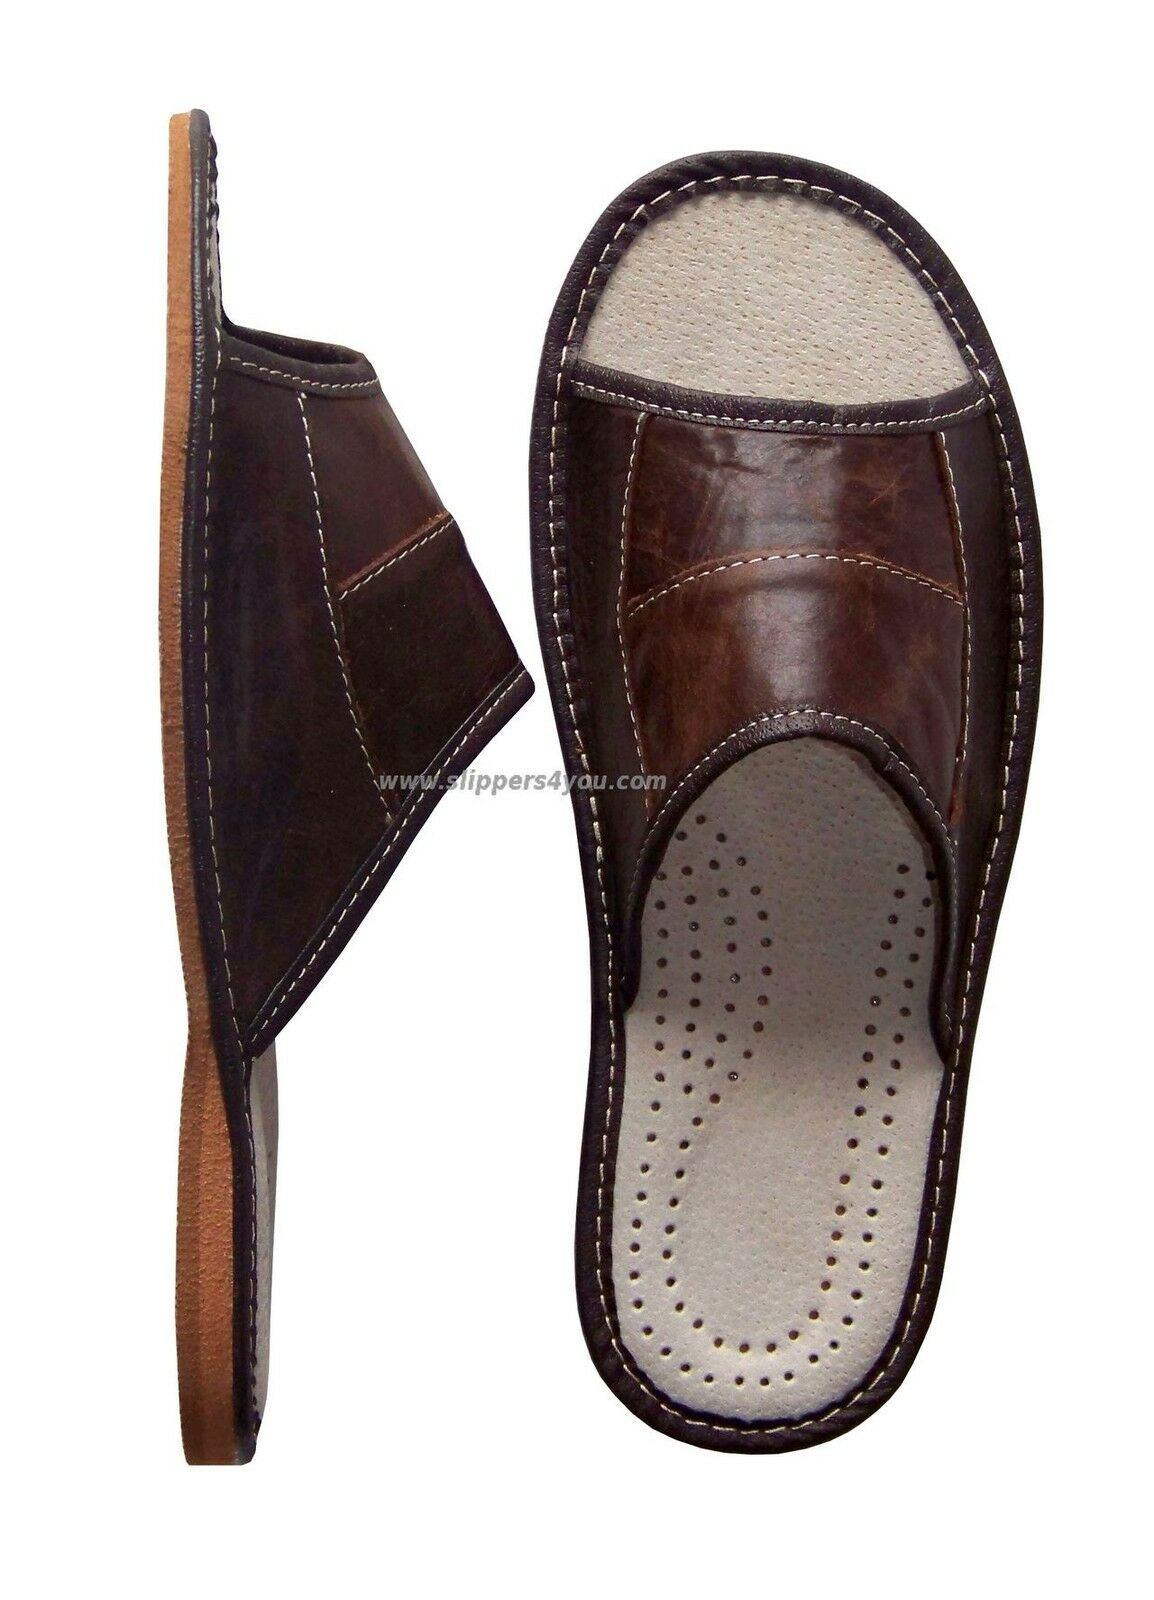 MEN'S SHOES LEATHER SLIPPERS SHOES MEN'S MULES BROWN SLIP ON UK SIZE 6-11 SALE OPEN PEEP TOE 49417a